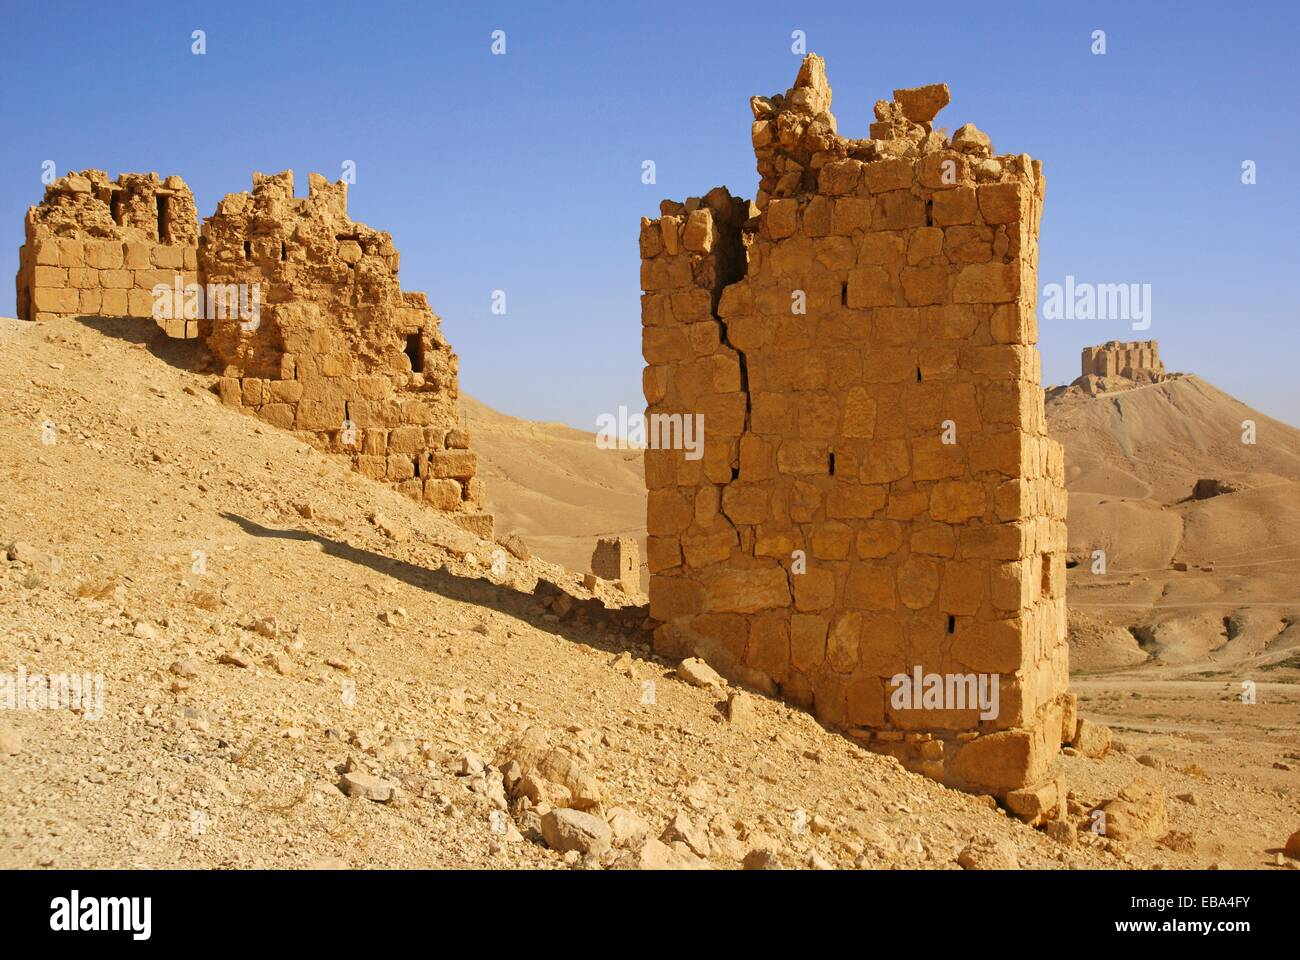 Syria, Palmyra, Funerary towers and the Arab Castle - Stock Image